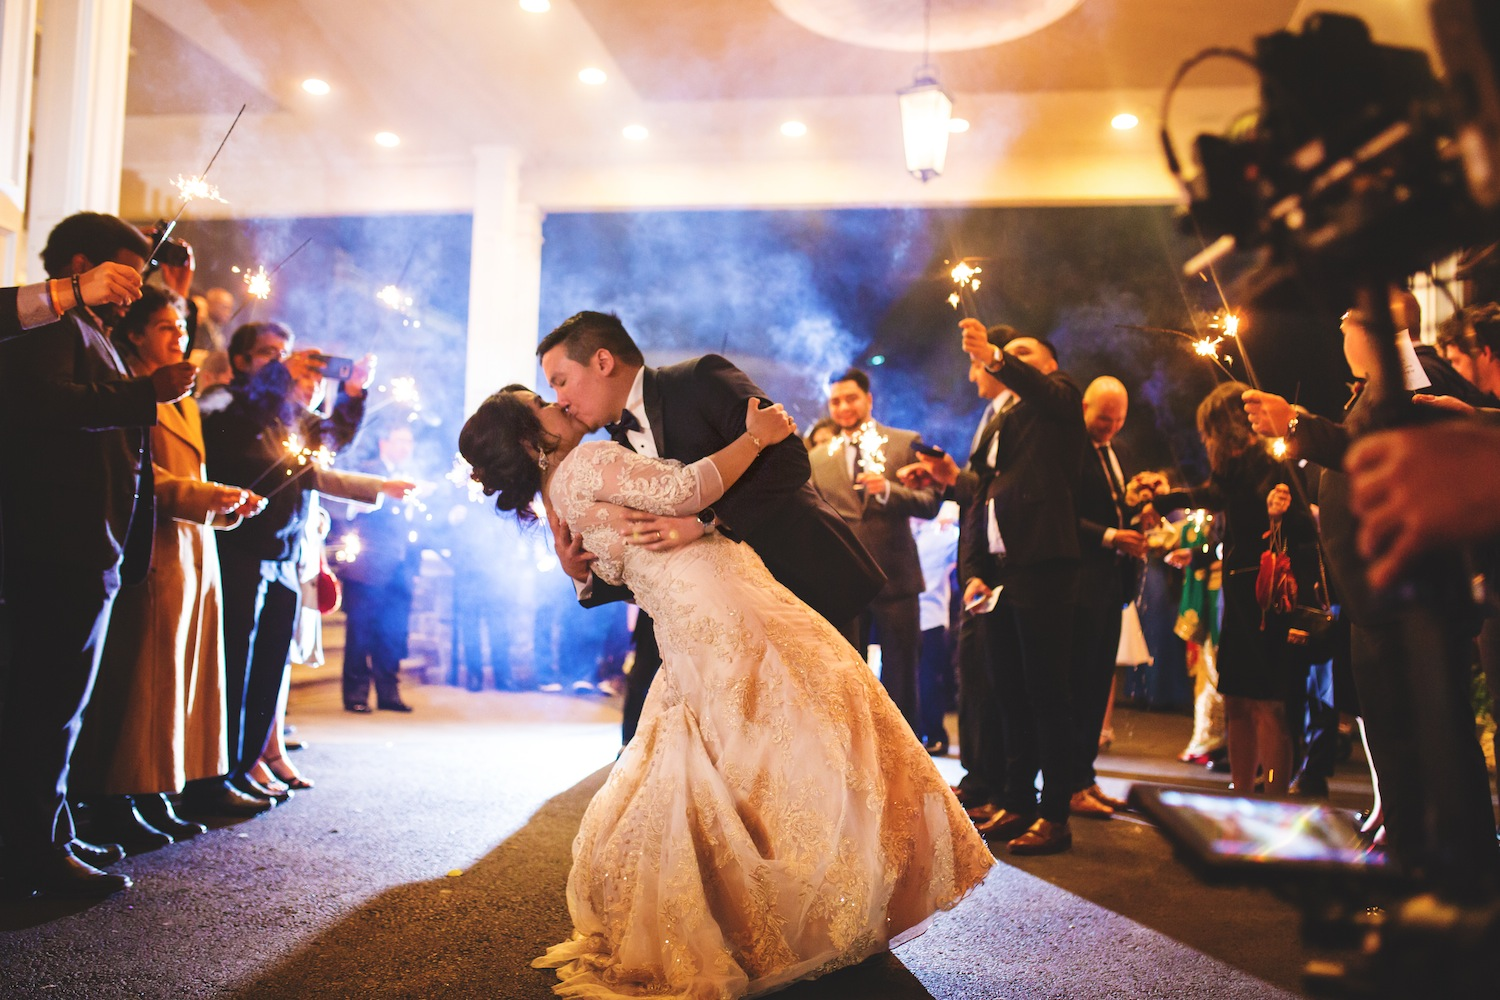 rob-dipping-and-kissing-kamana-as-guests-cheer-with-sparklers-nj-wedding-photography